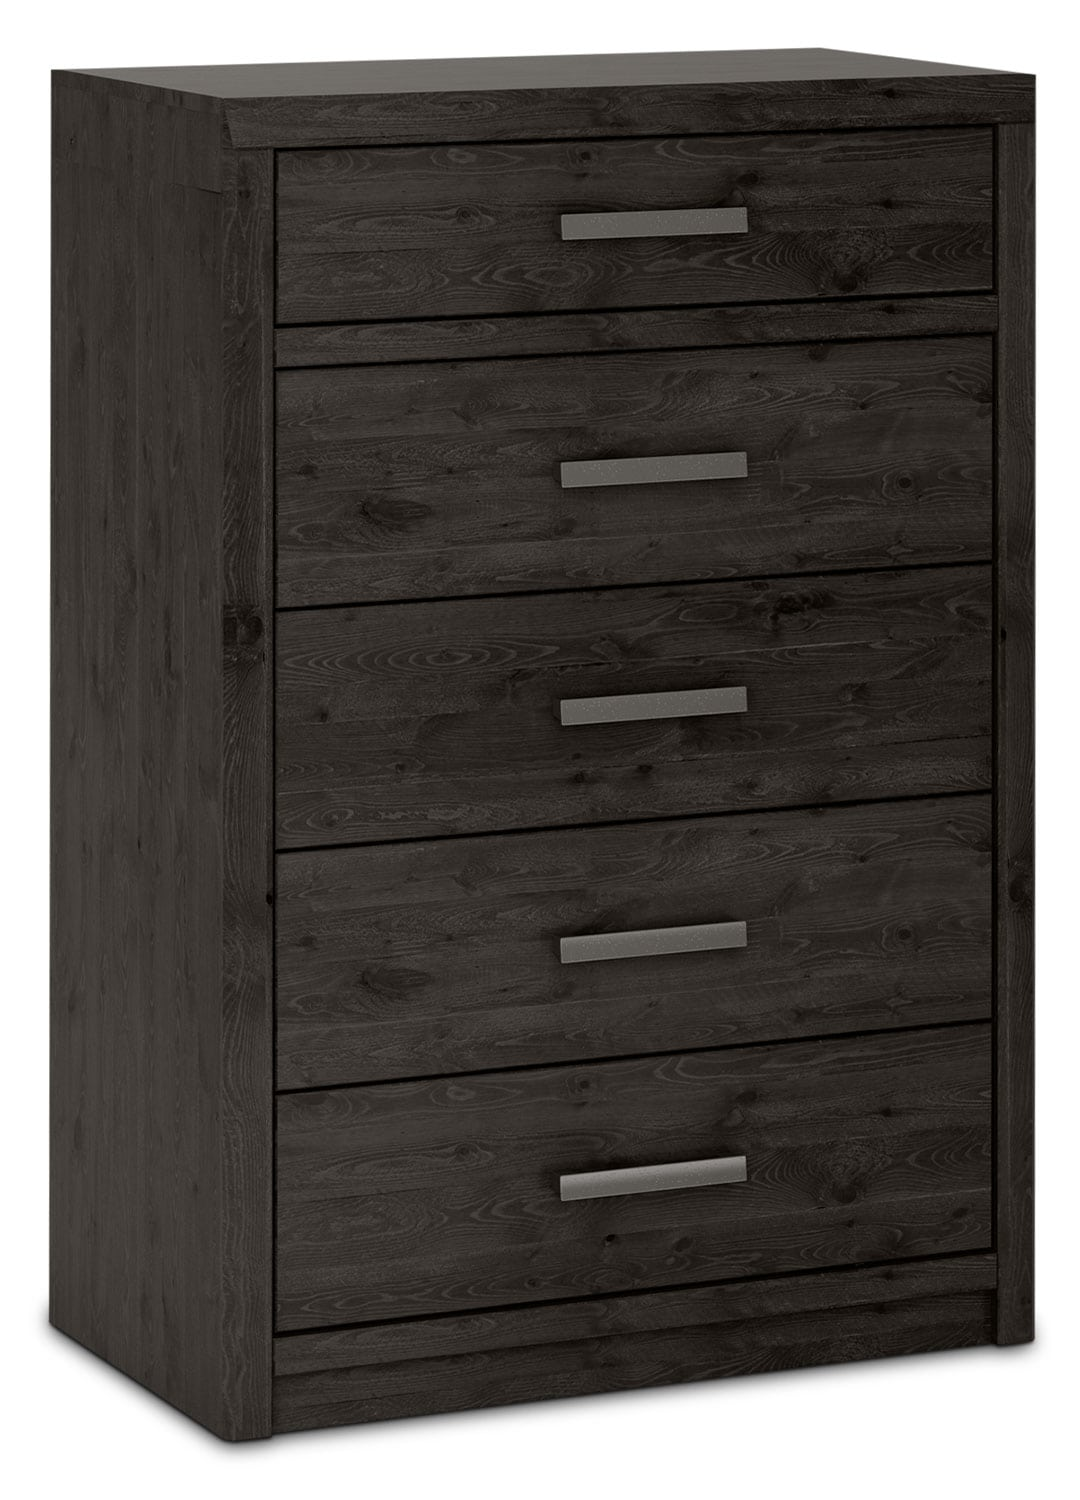 Bedroom Furniture - Onyx Chest